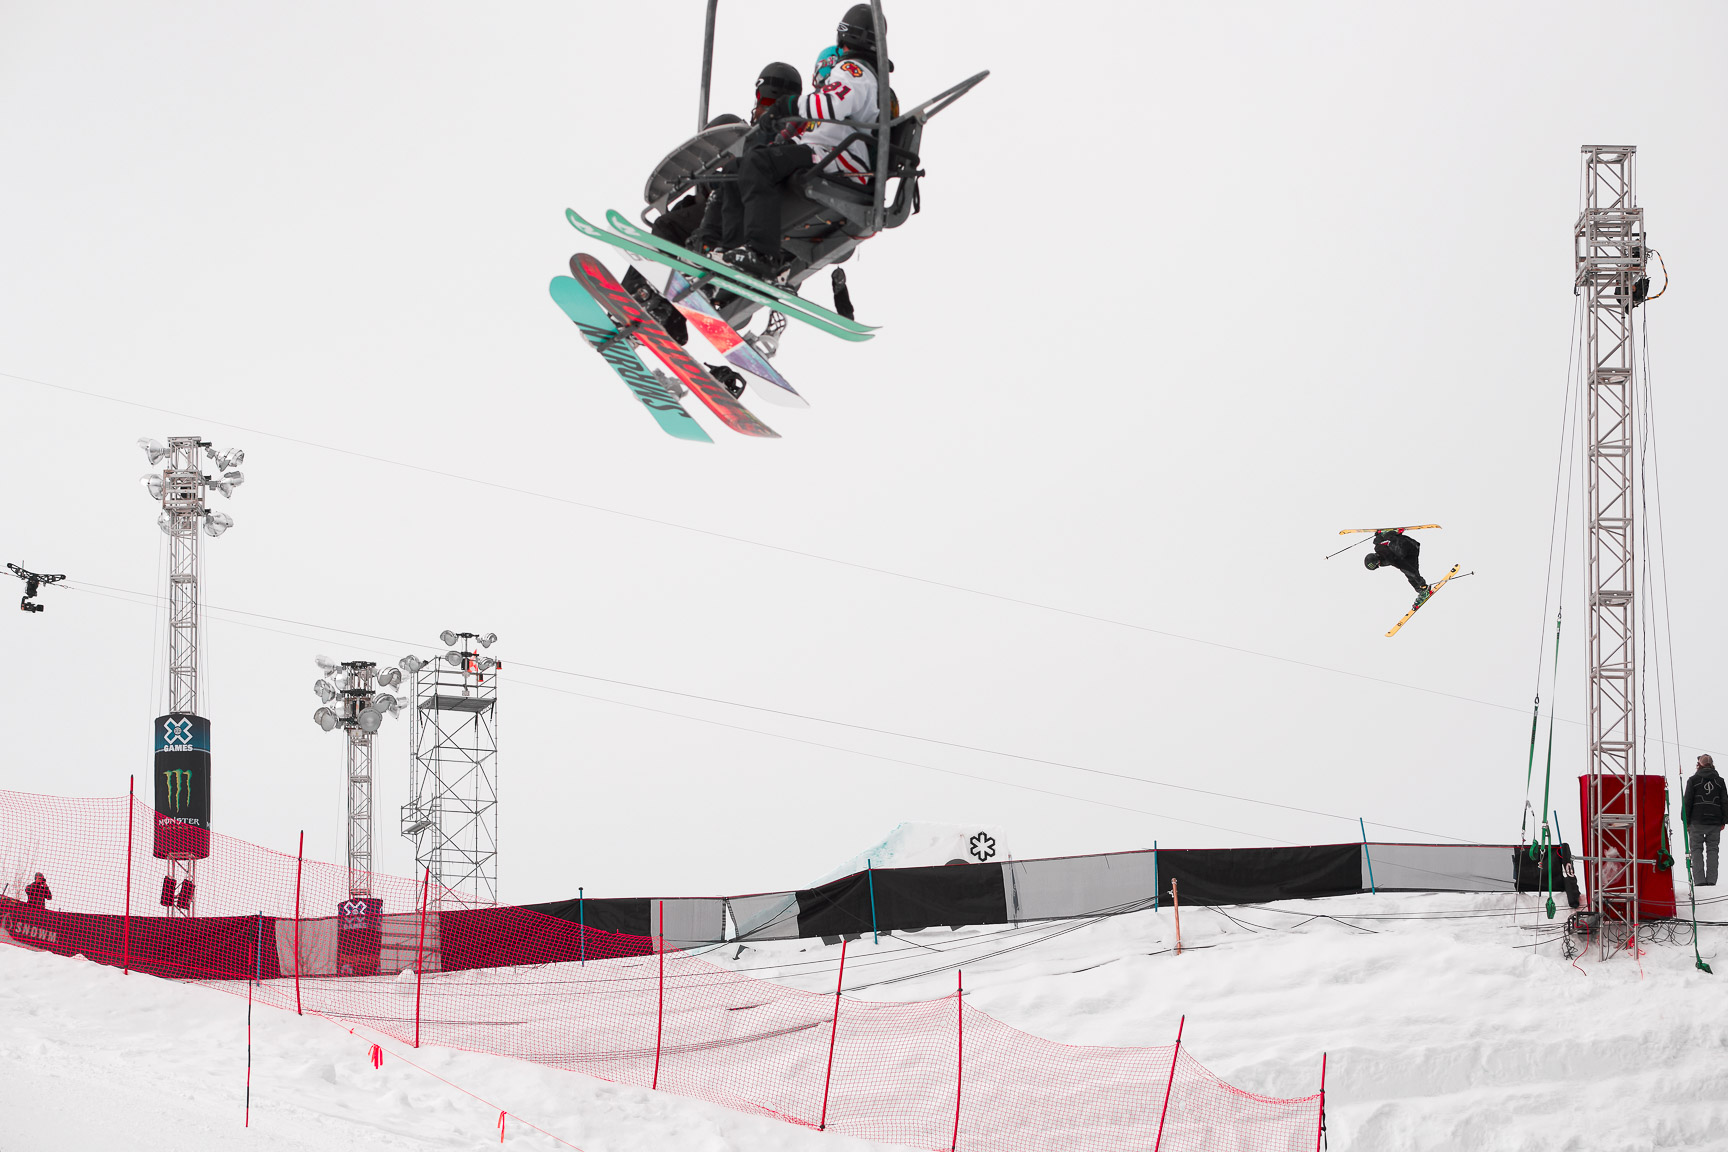 Alex Beaulieu-Marchand, Men's Ski Slopestyle